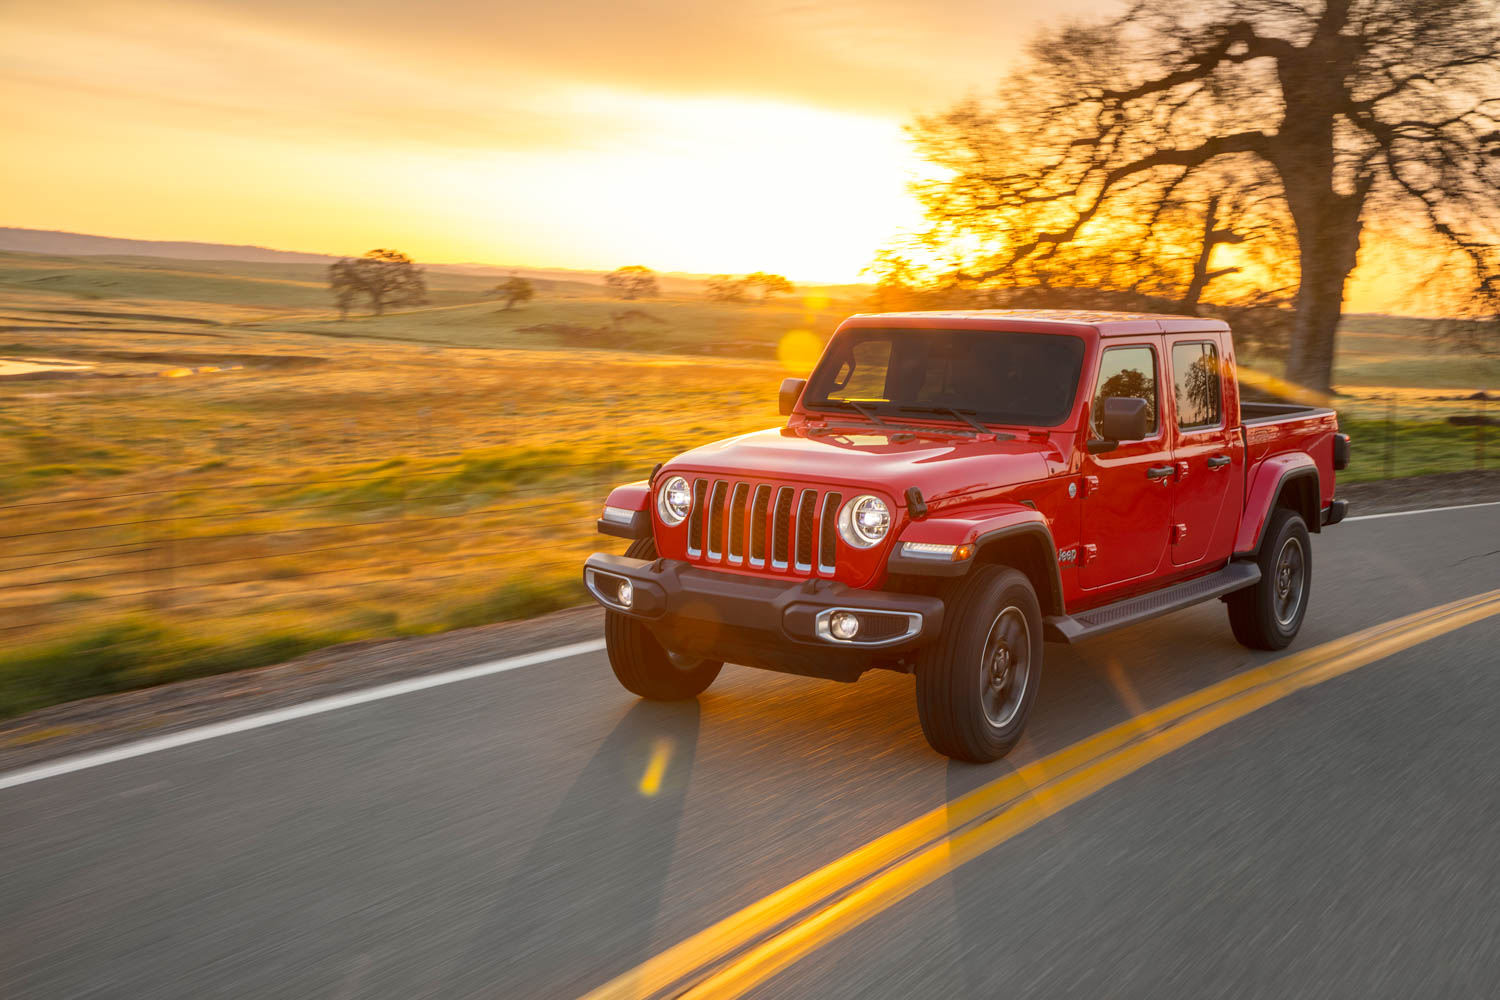 Red 2020 Jeep Gladiator Rubicon at sunset